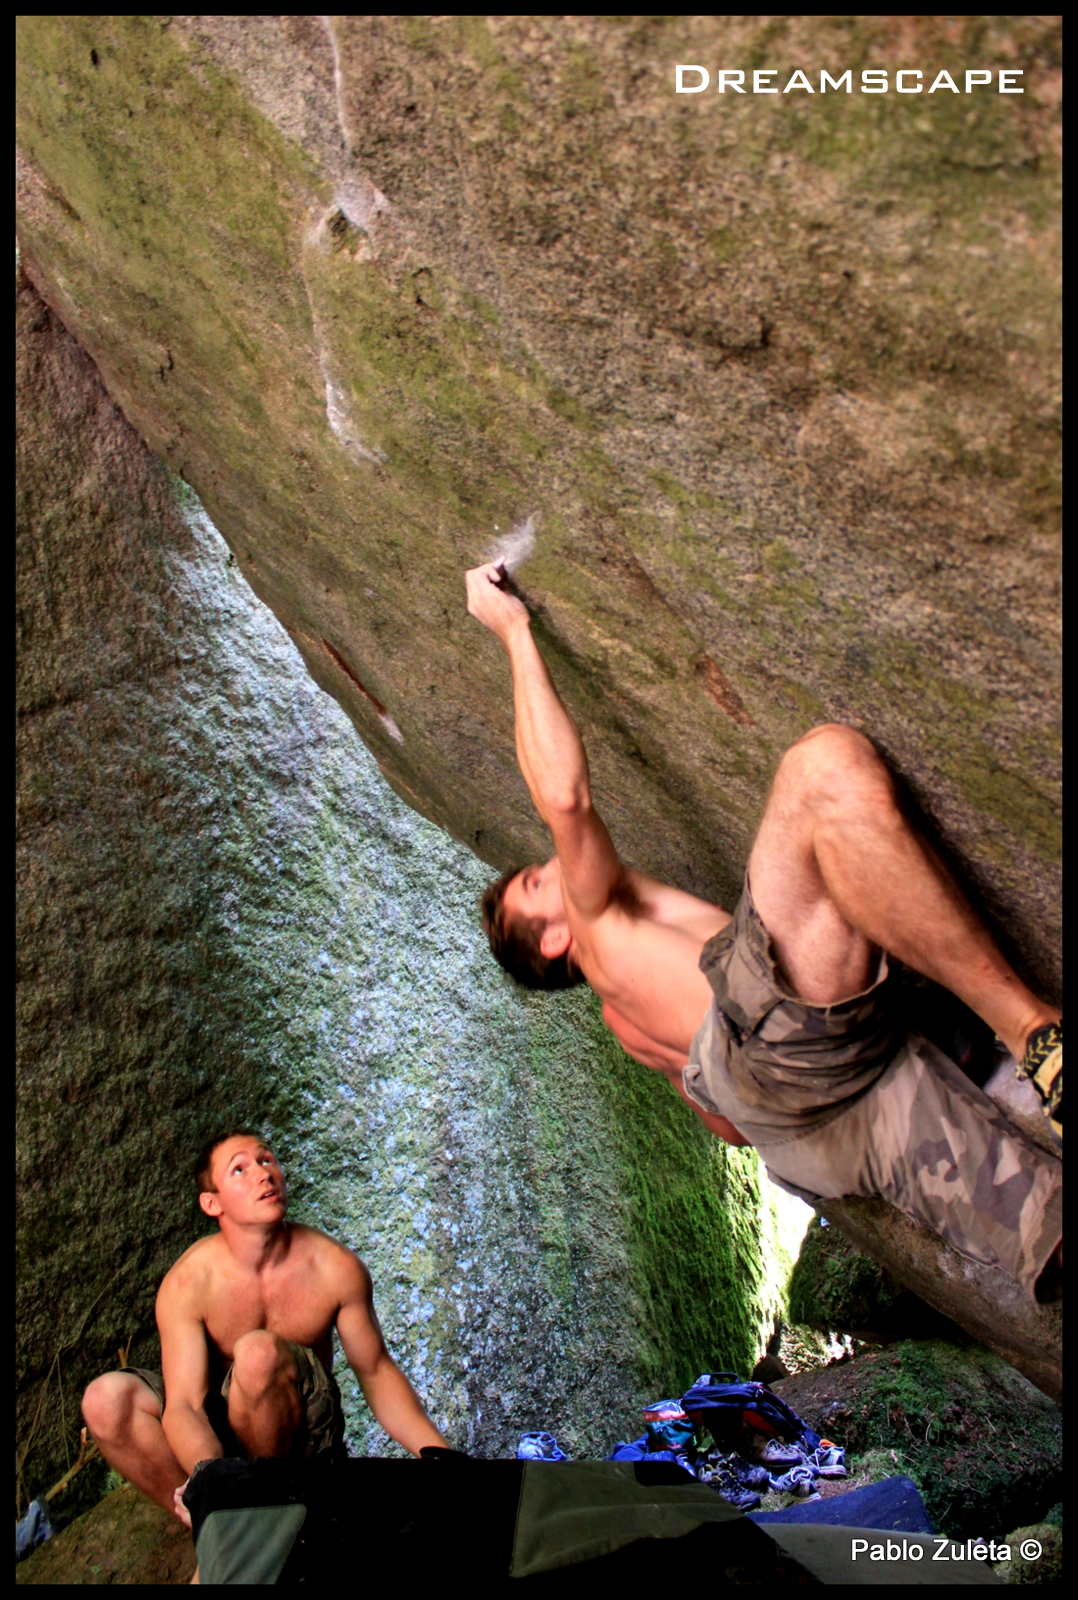 Joel on the crux of Dreamscape